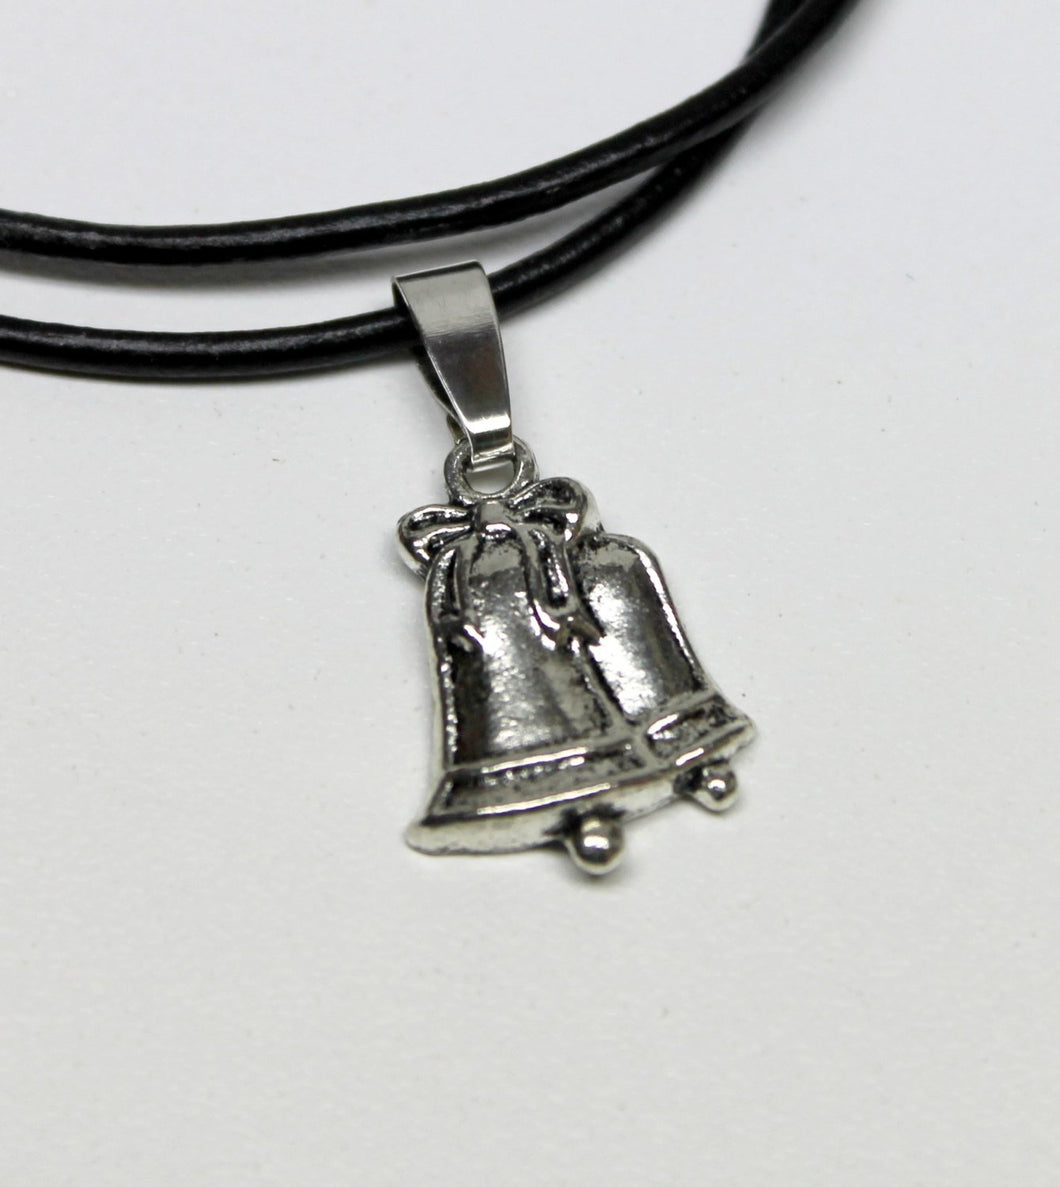 antique silver bells charm necklace,on leather cord,last minute gift,stocking stuffers,antique silver bells charm,silver bells charm,